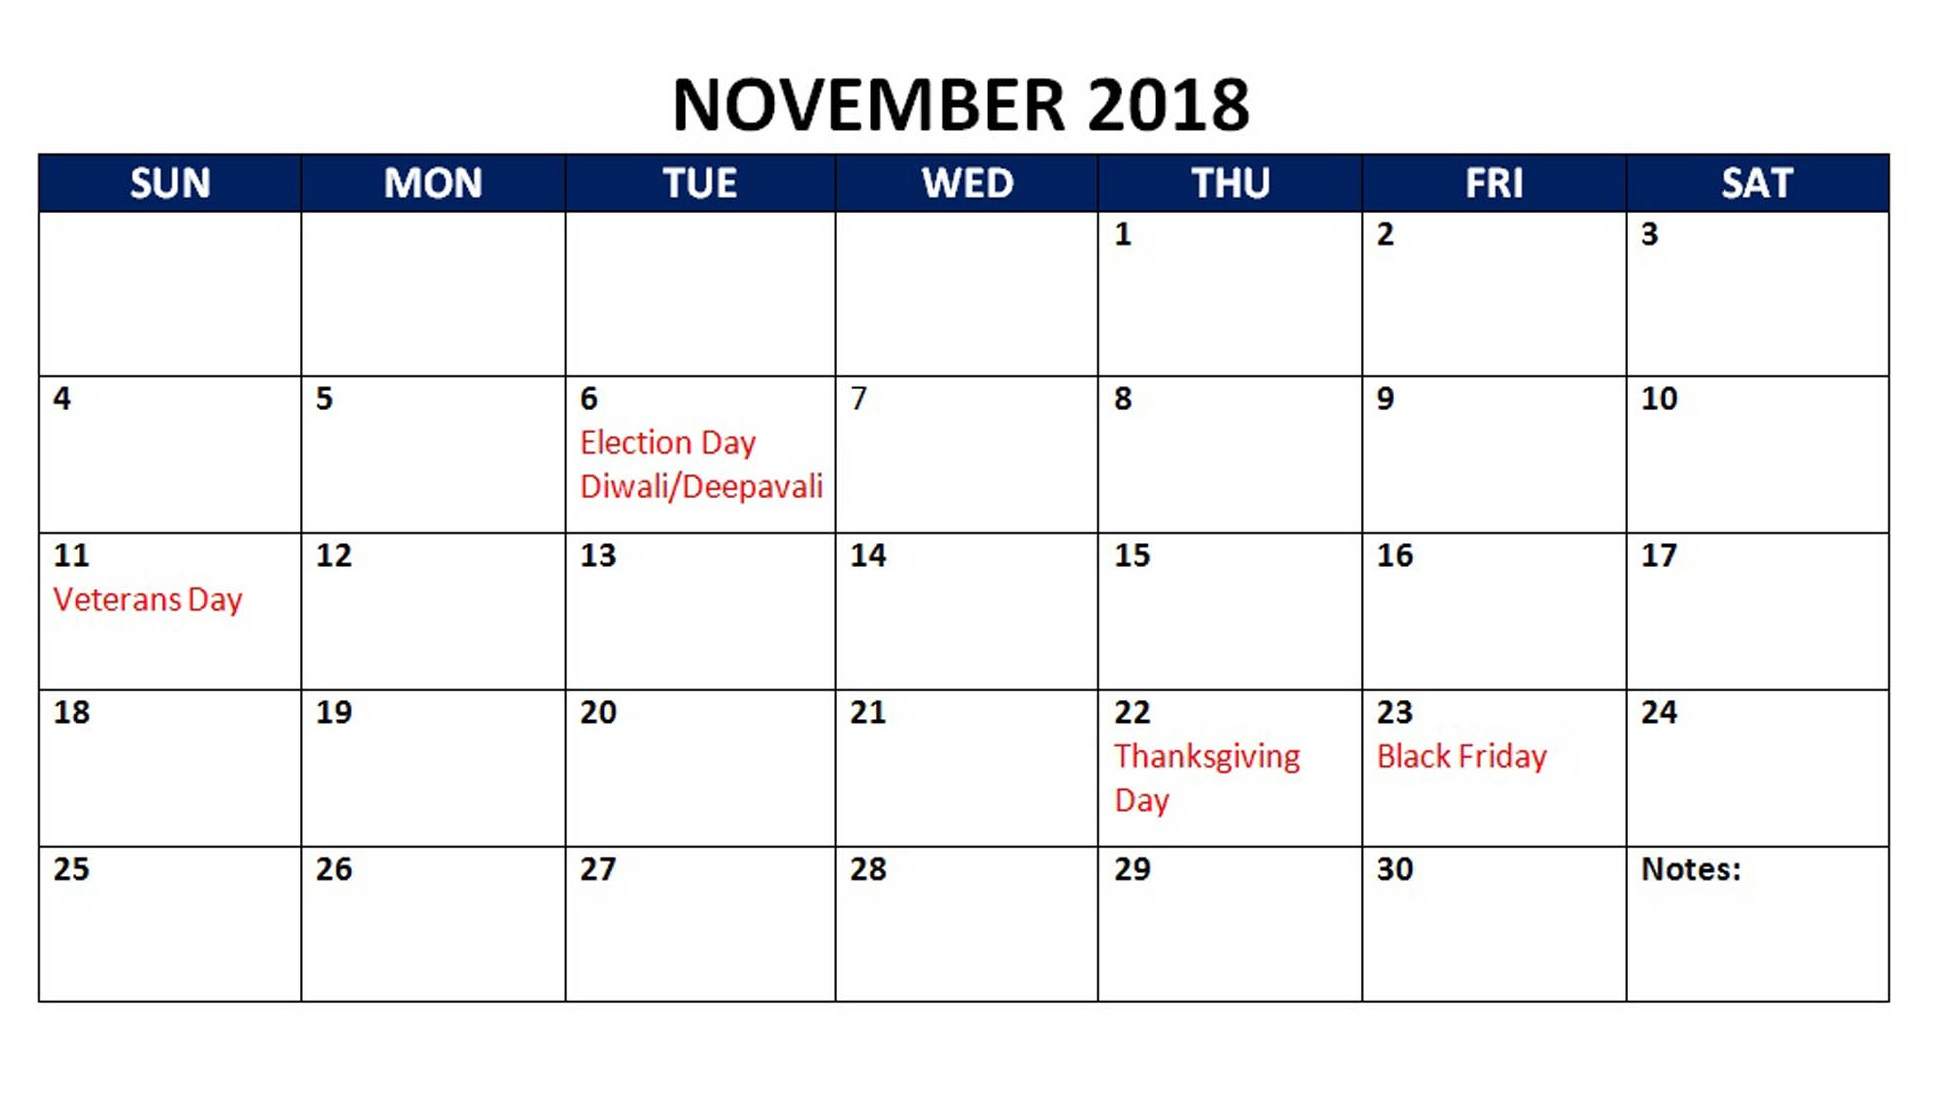 November 2018 Calendar with Holidays Template